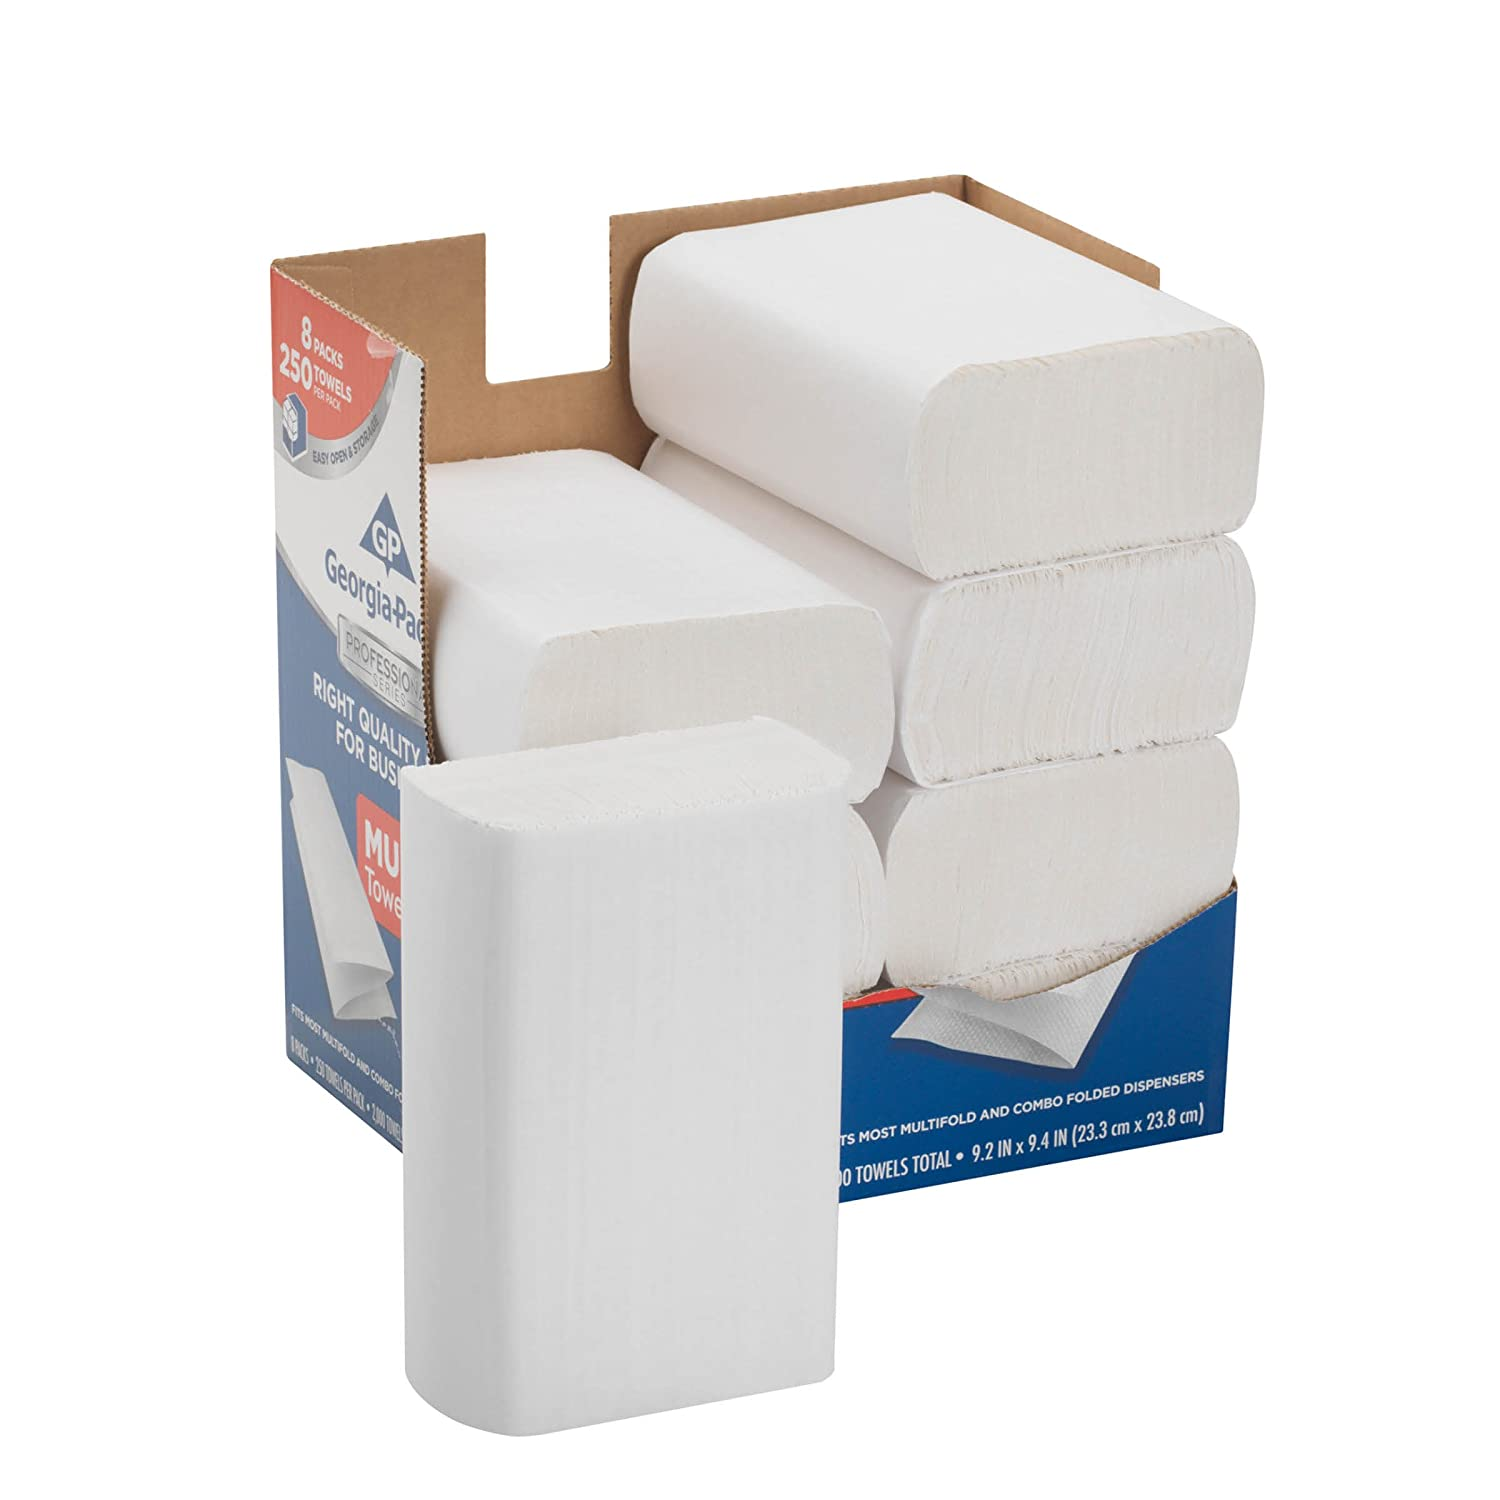 Georgia-Pacific Professional Series Premium 1-Ply Multifold Paper Towels by GP PRO 8 Packs Per Case Georgia-Pacific 250 Towels Per Pack 2212014 White